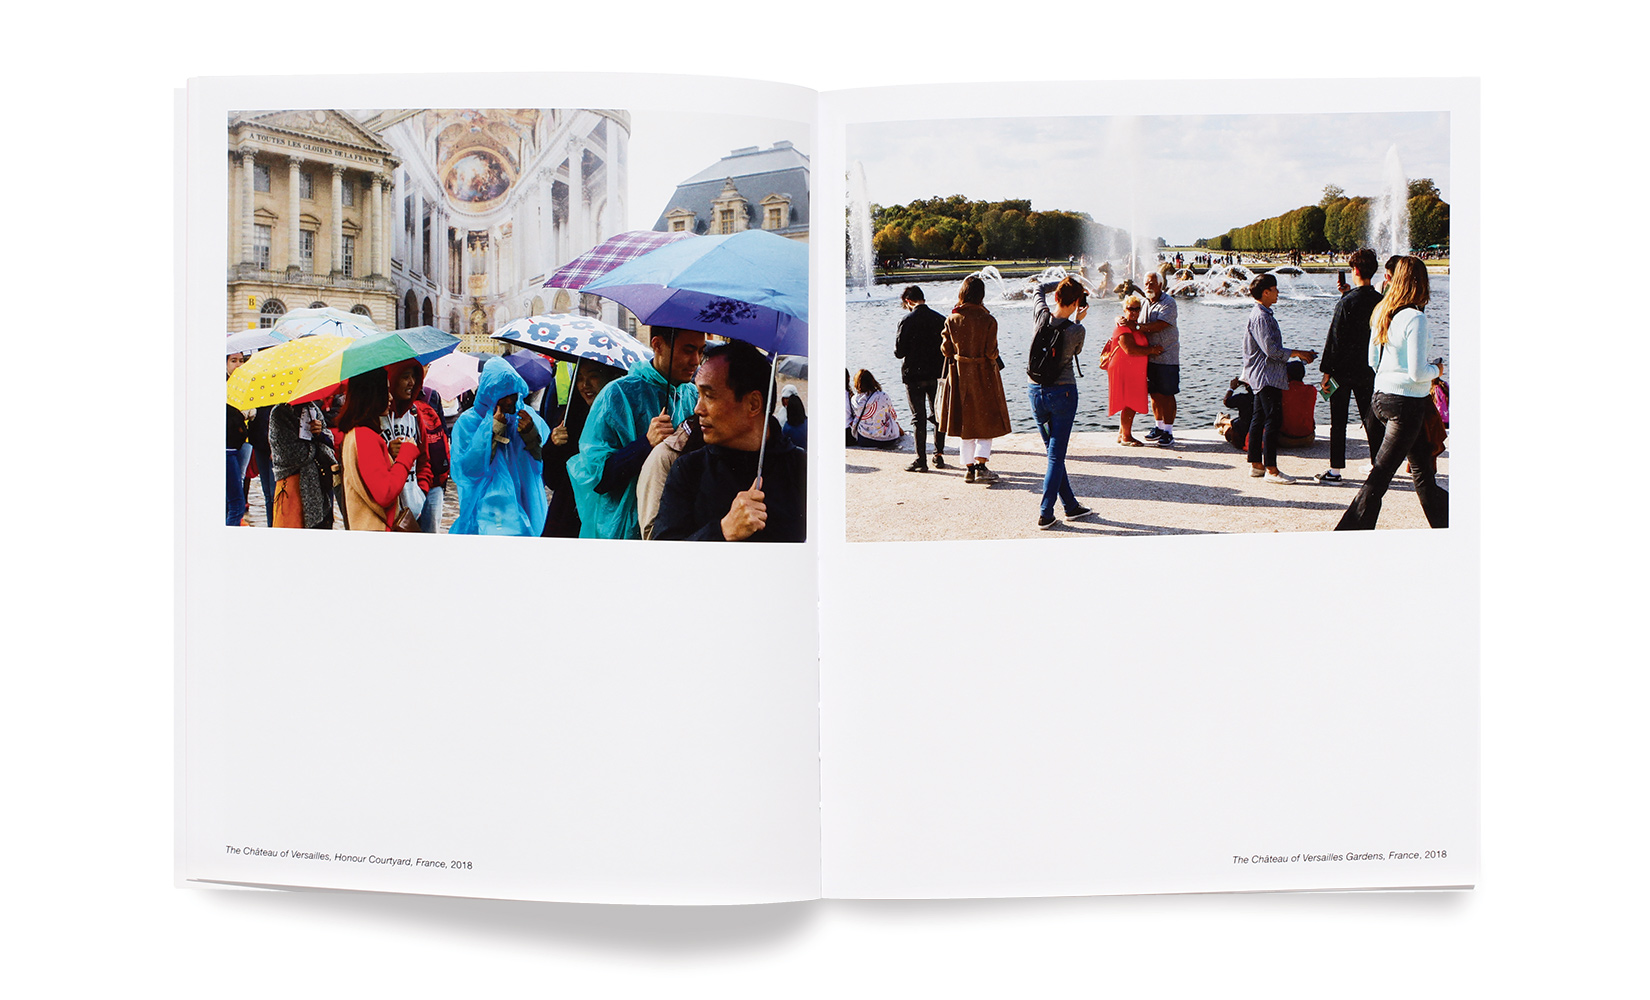 versailles-visible-invisible-toluca-studio-olivier-andreotti-MARTIN-PARR-3.jpg